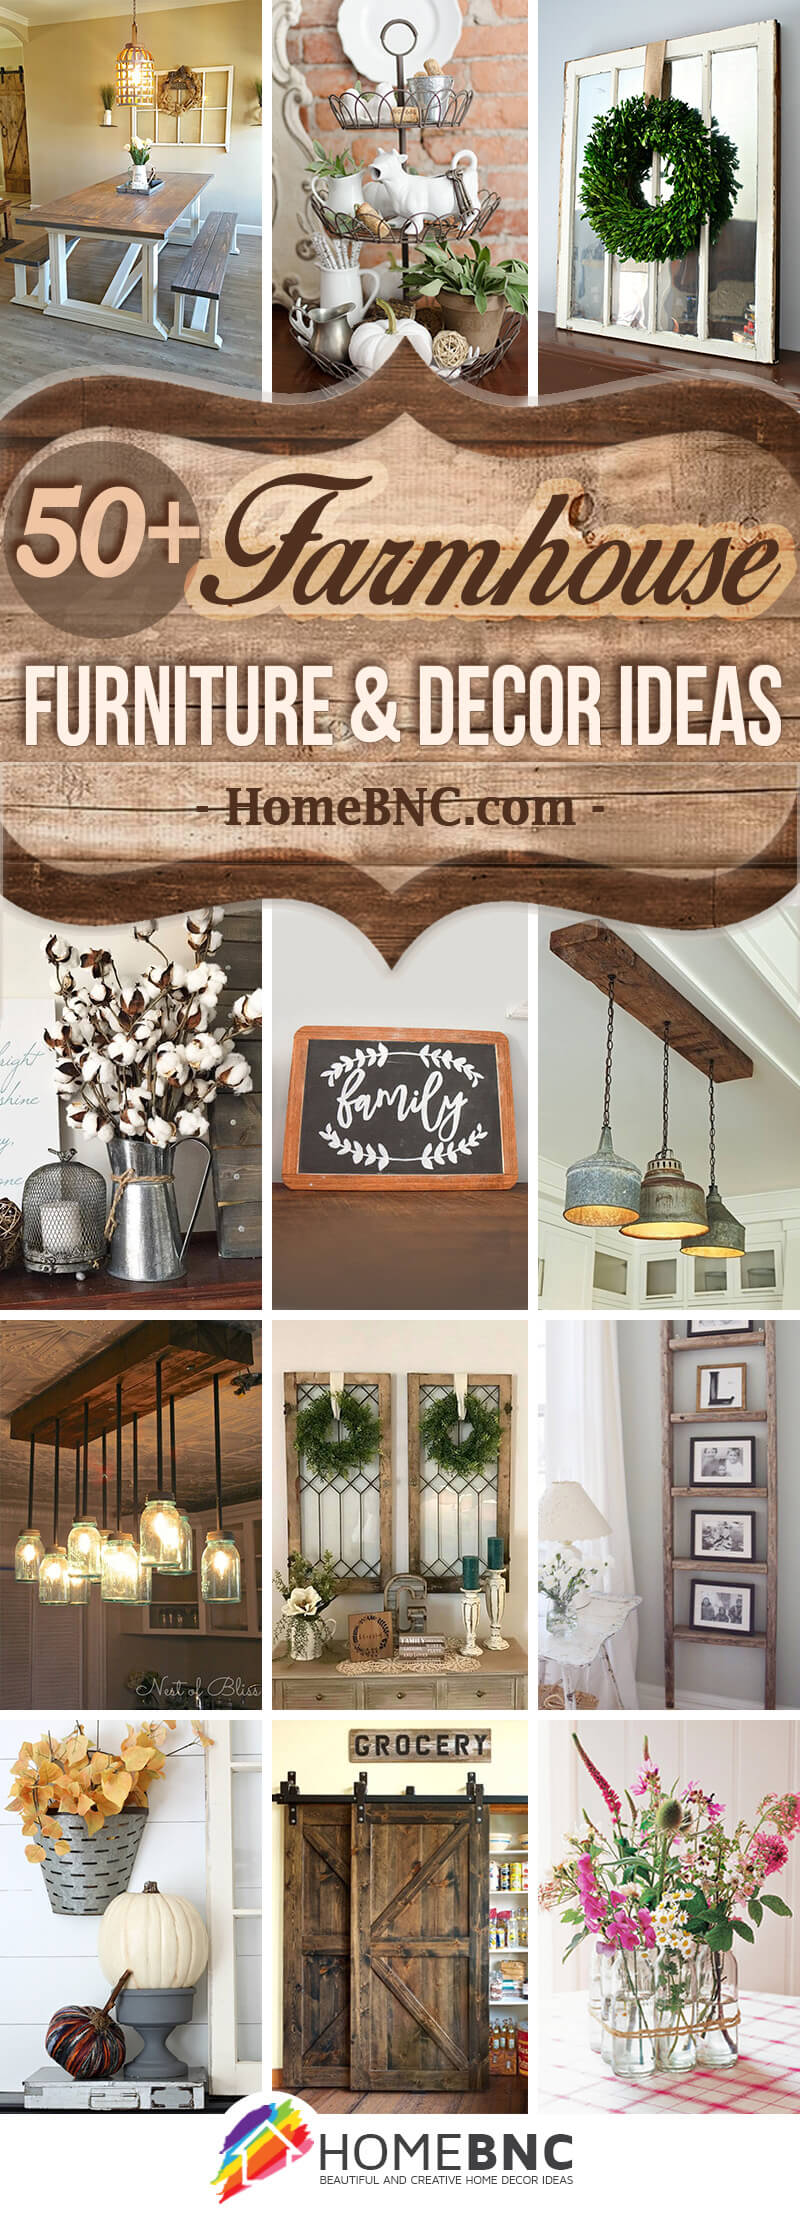 Https Homebnc Com Best Rustic Farmhouse Interior Design Ideas Farmhouseinterior: 50+ Best Farmhouse Furniture And Decor Ideas And Designs For 2020